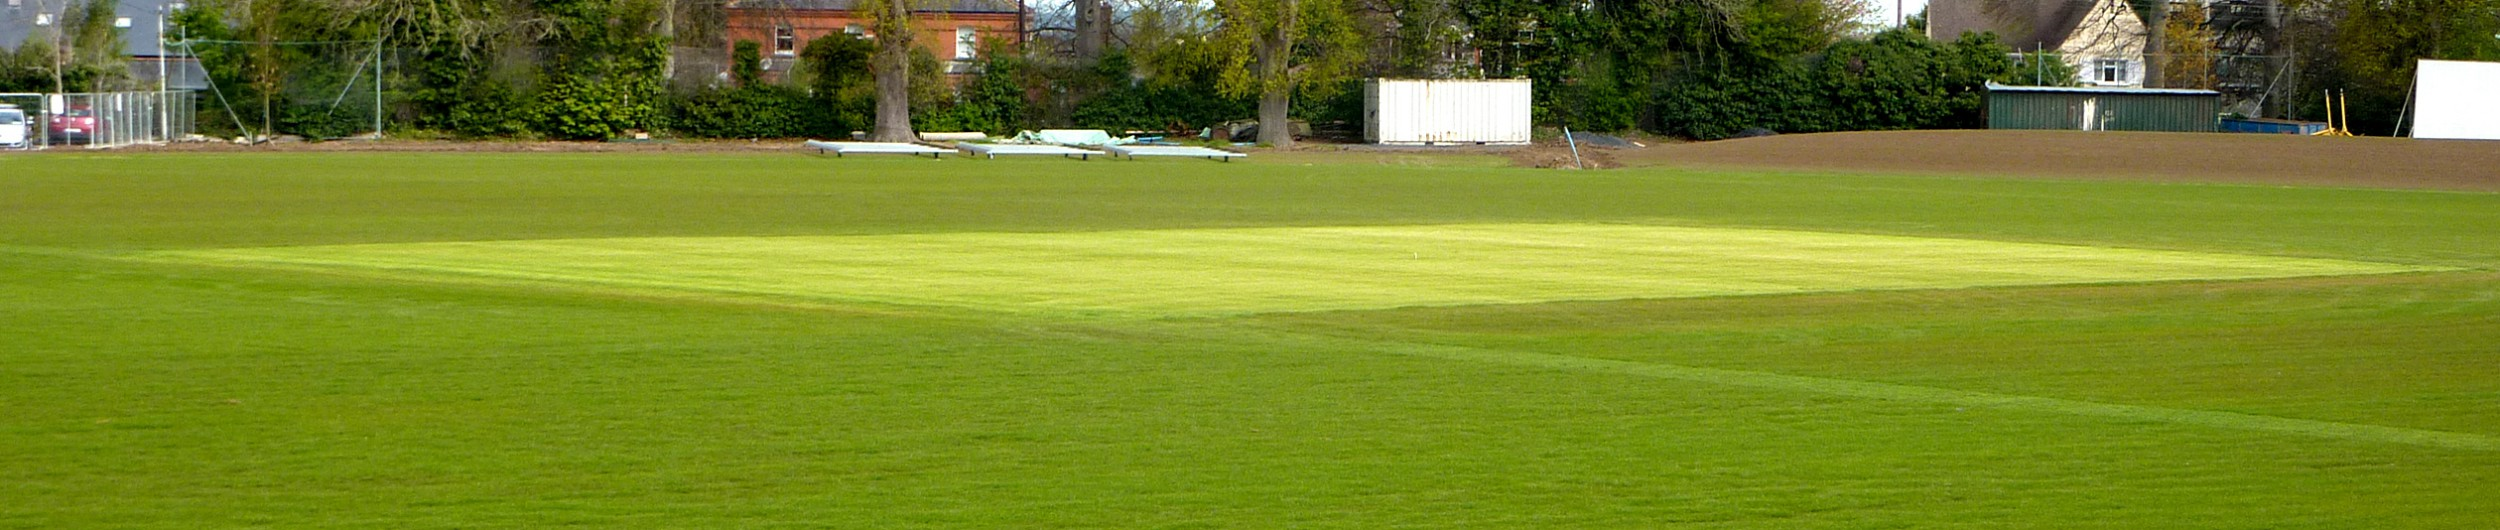 Cricket Ground with focus on Pitch